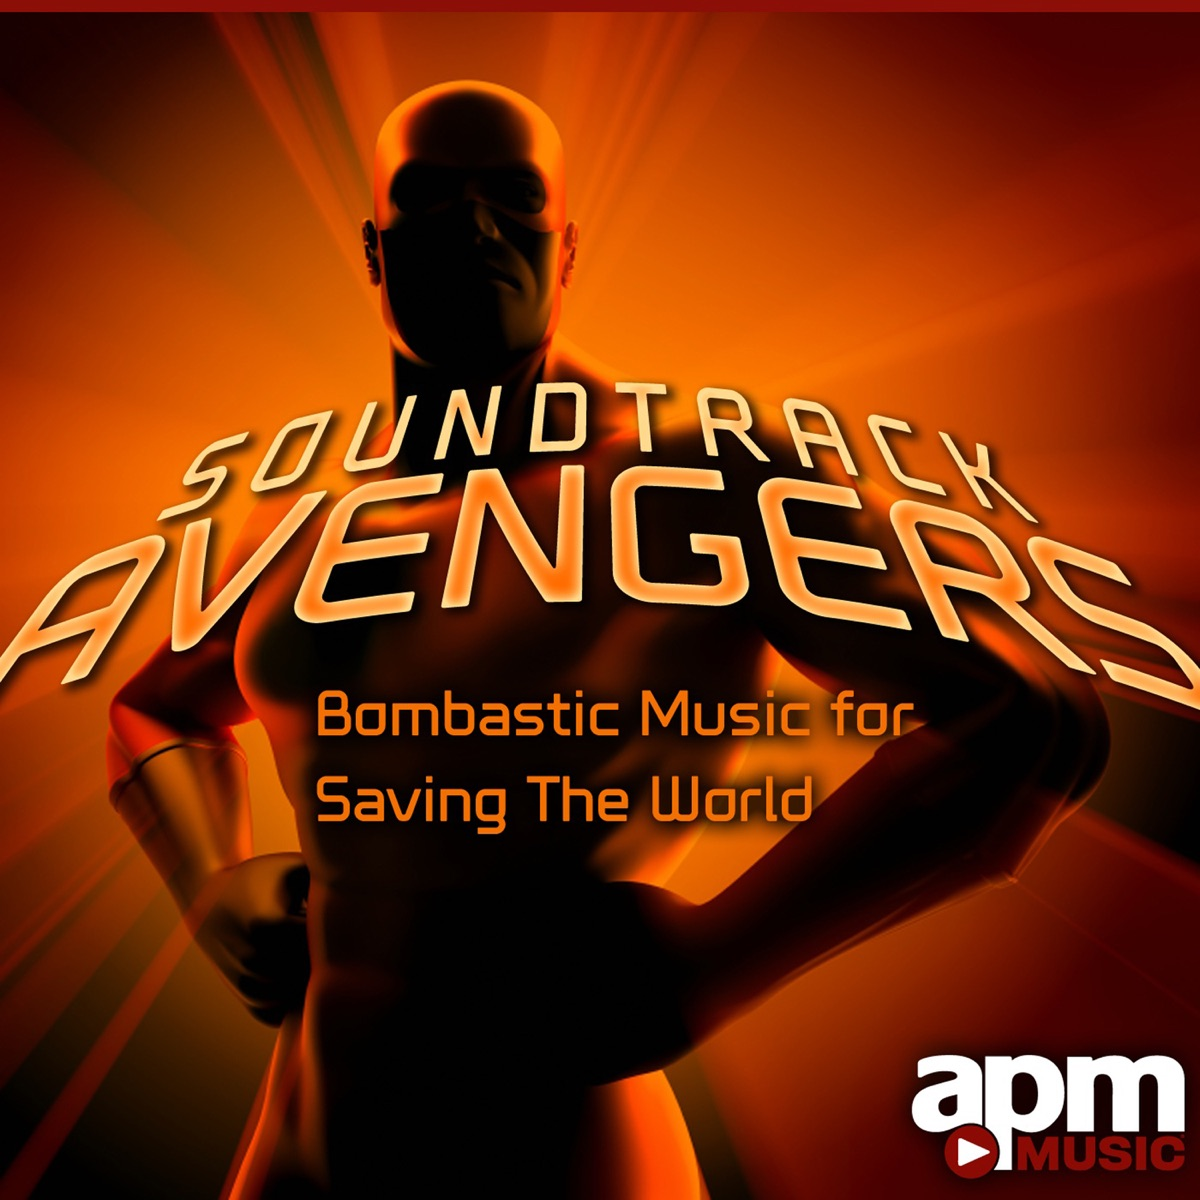 Soundtrack Avengers: Bombastic Music for Saving the World